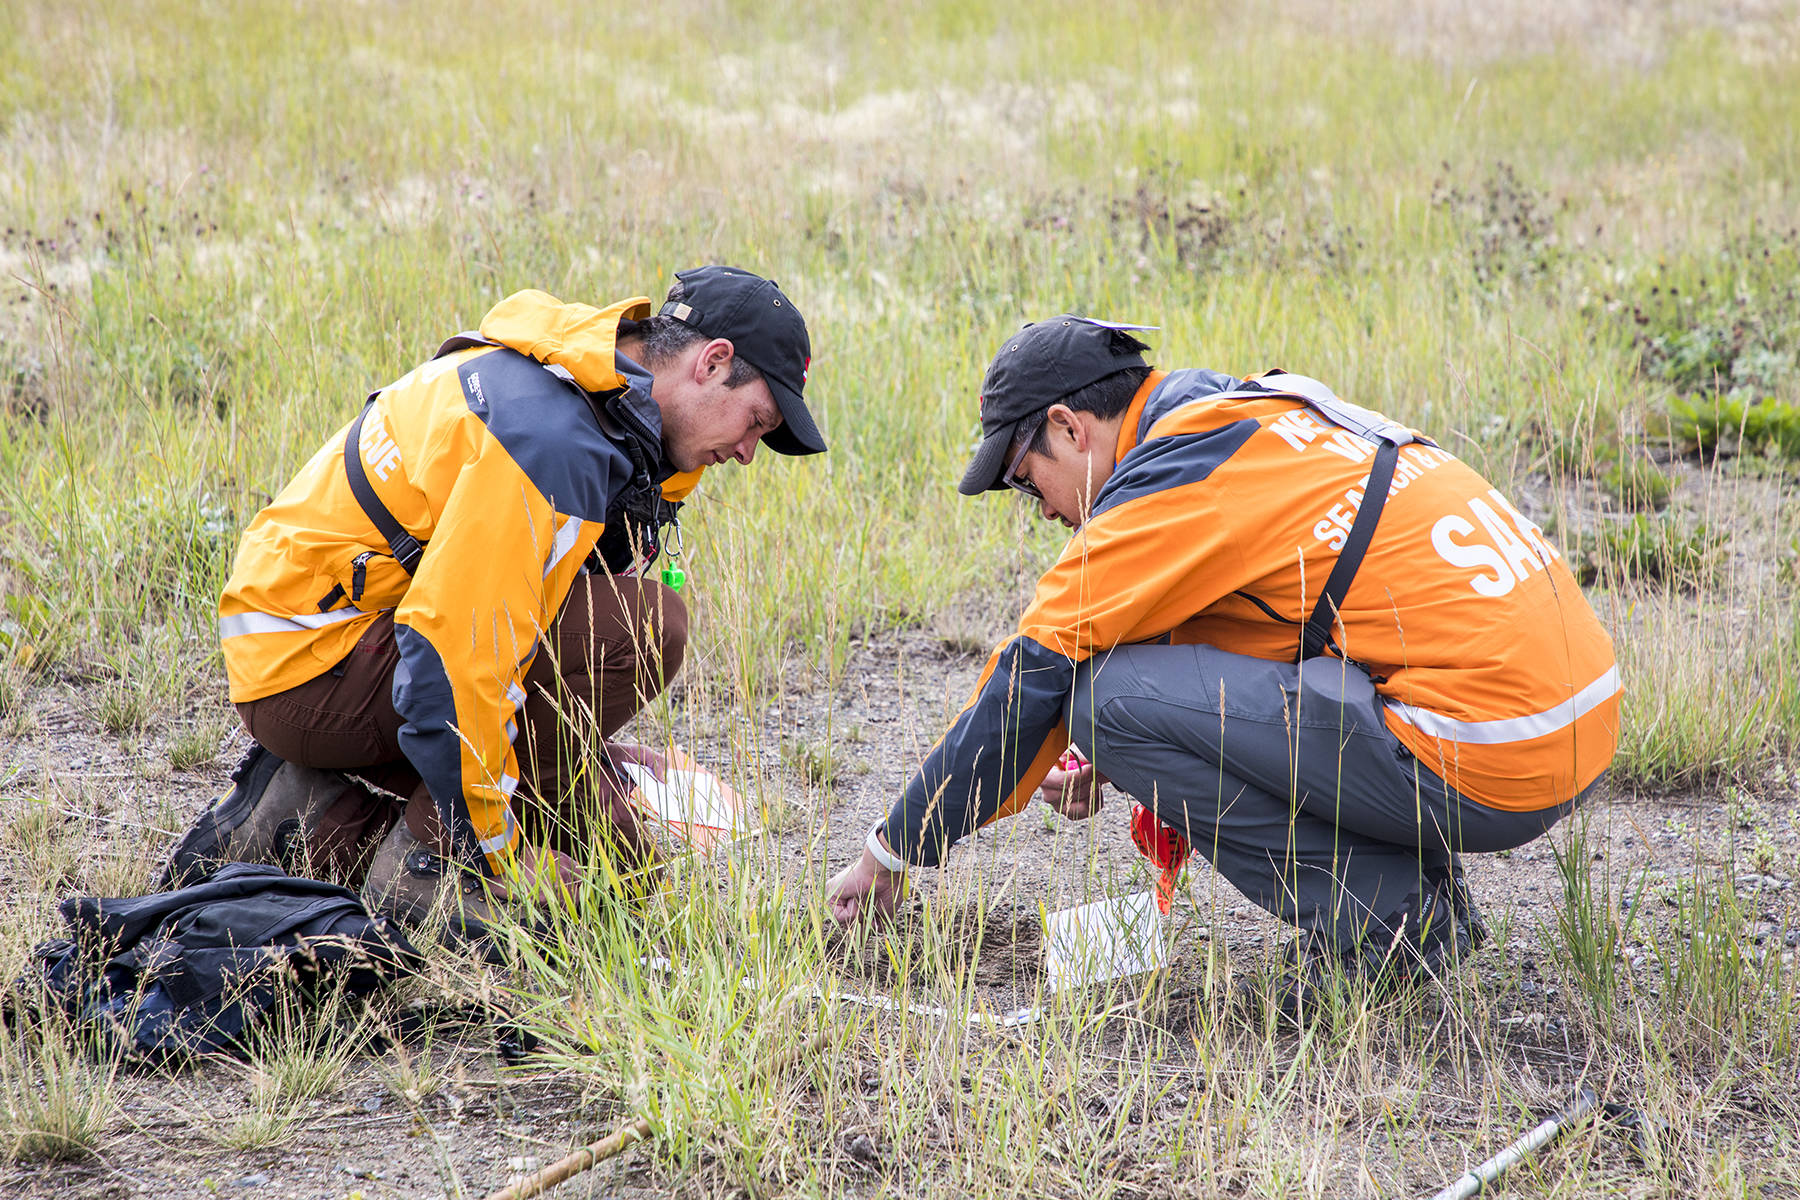 "Aug. 24, 2019 — Nechako Valley Search and Rescue hosted a B.C. tracking association course over the weekend. Members are shown analysing a foot print as part of the introductory course called Track Aware which was guided by Chris Mushumanski. SAR members who already have some track aware courses, were taking the Tracker course which is more advanced. There were trained by Jeni Christie, president of B.C. tracking association. ""In B.C. for search, tracking is a really important skill used on many searches, especially here in the north. Having skilled trackers is really essential in reducing the area you are going to search, finding that subject faster, getting a direction of travel from where they were last seen,"" Mushumanski said. (Aman Parhar photo)"